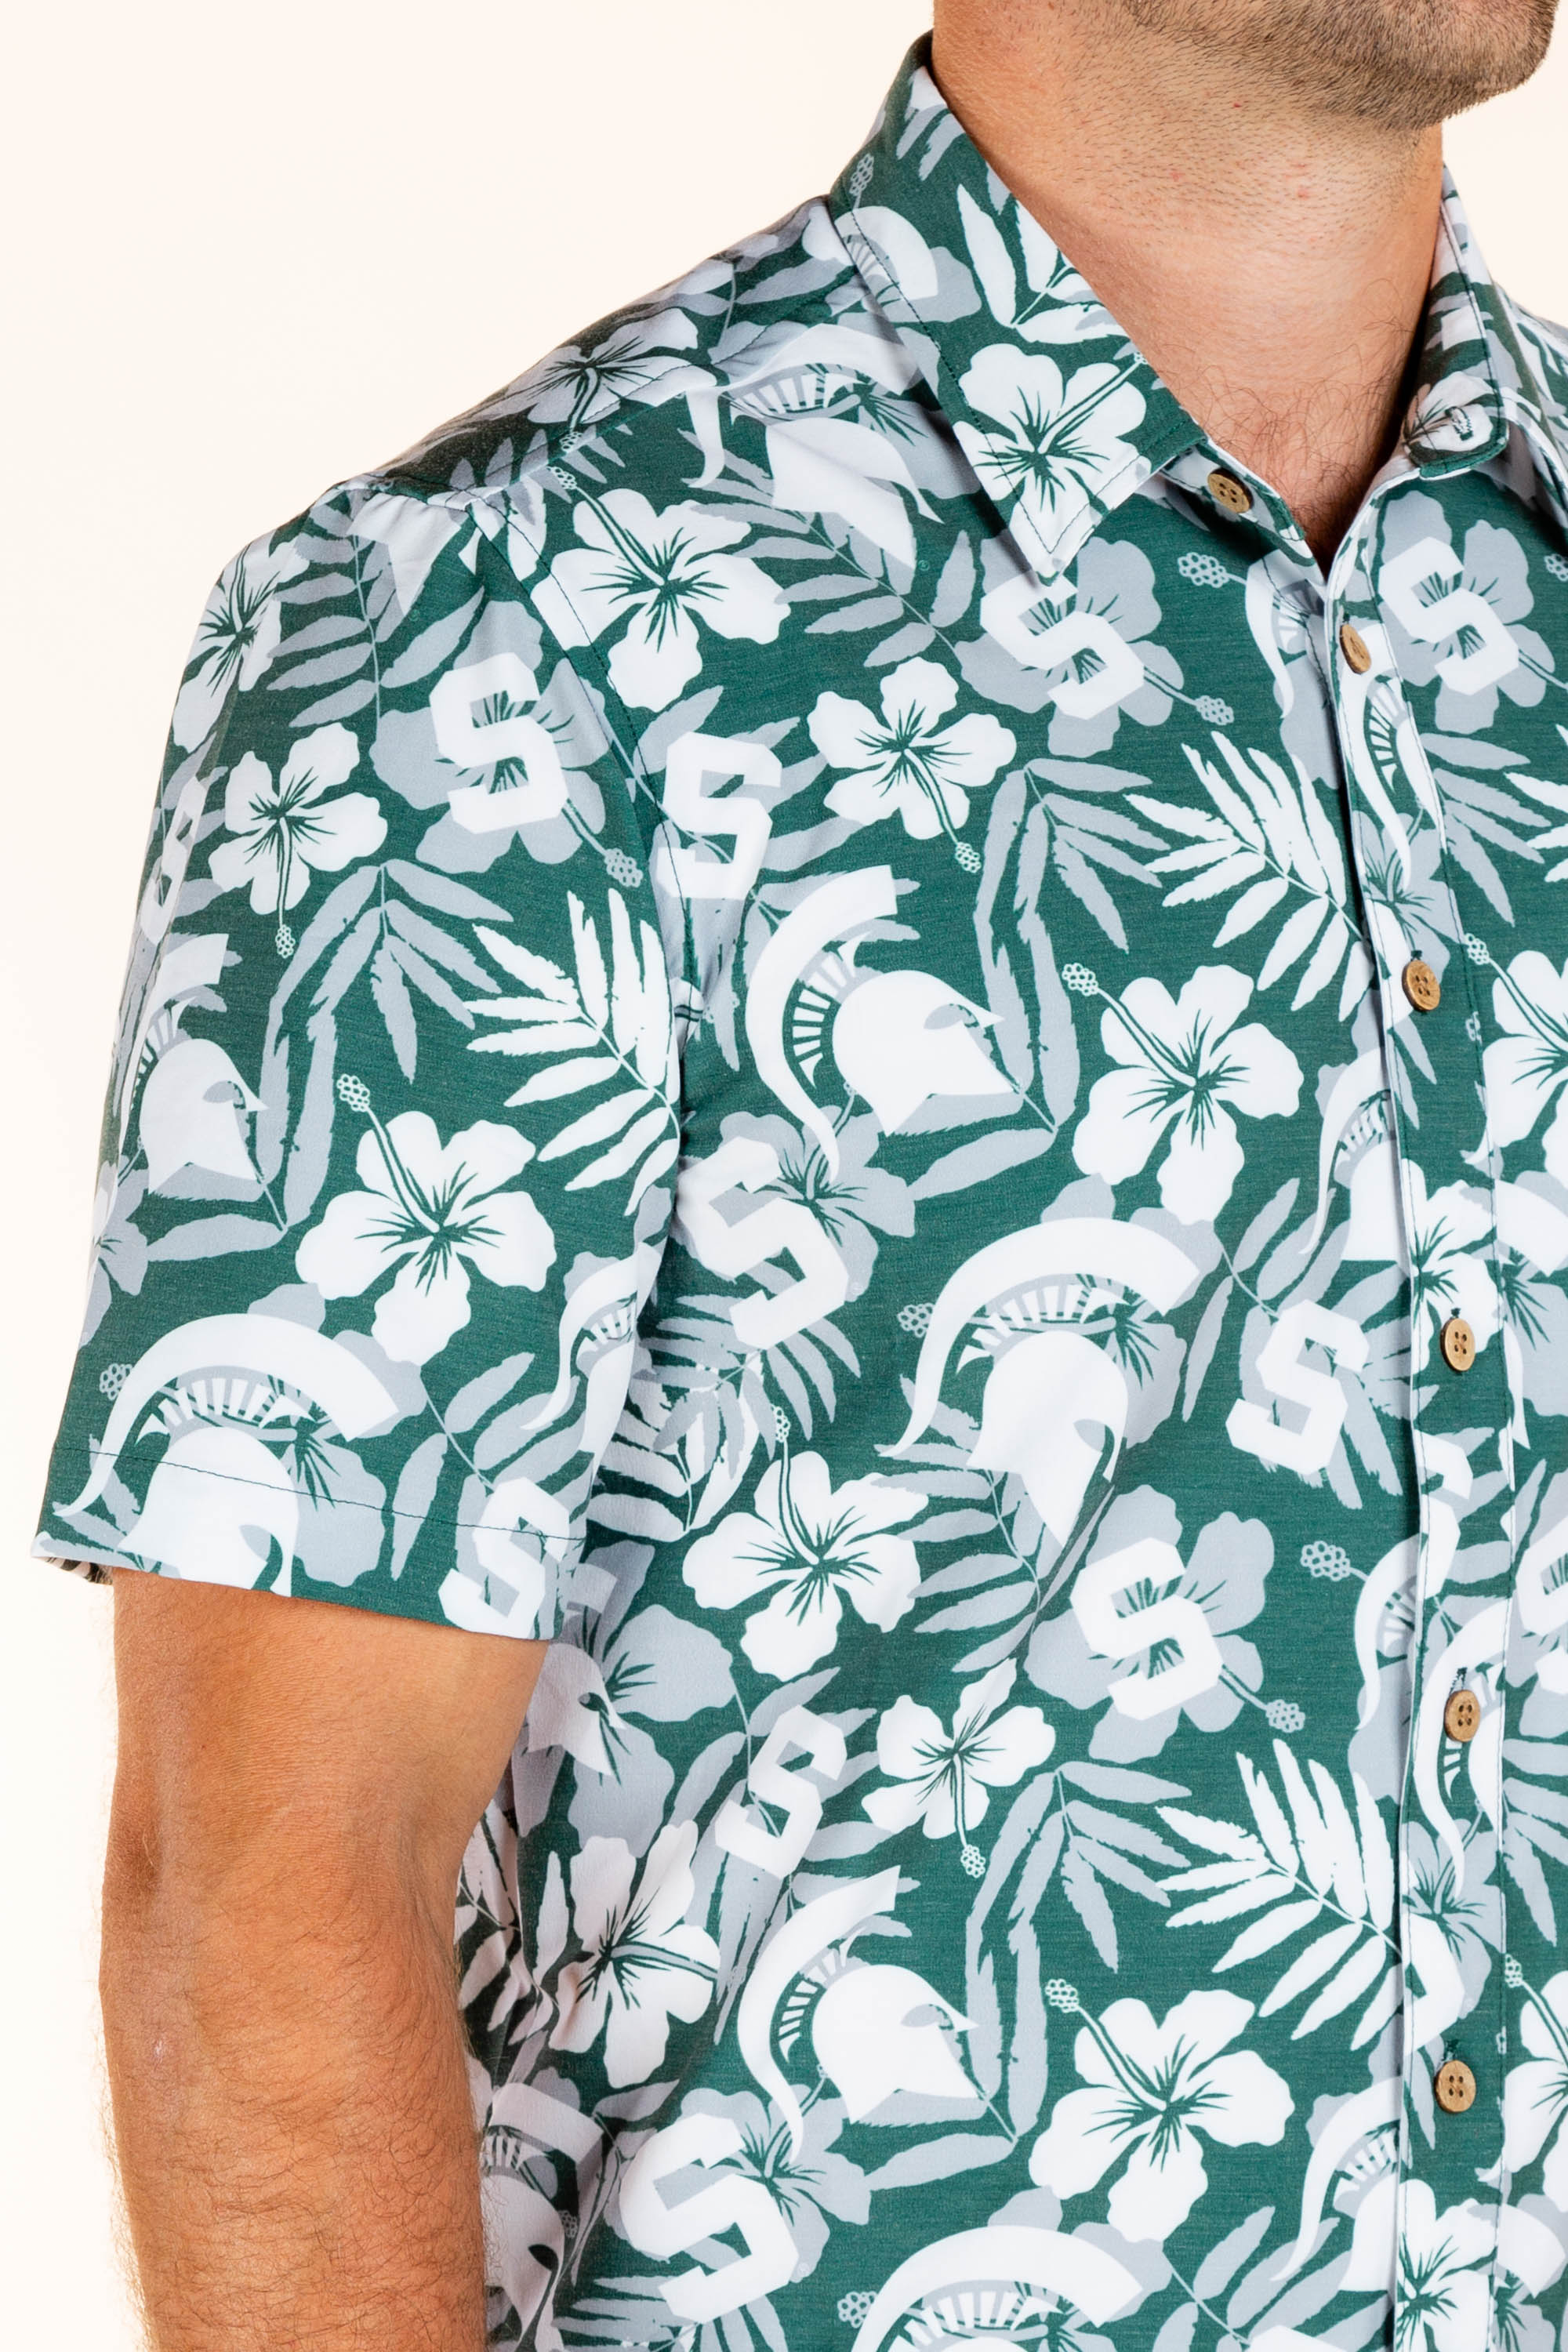 MSU Spartans Hawaiian Shirt